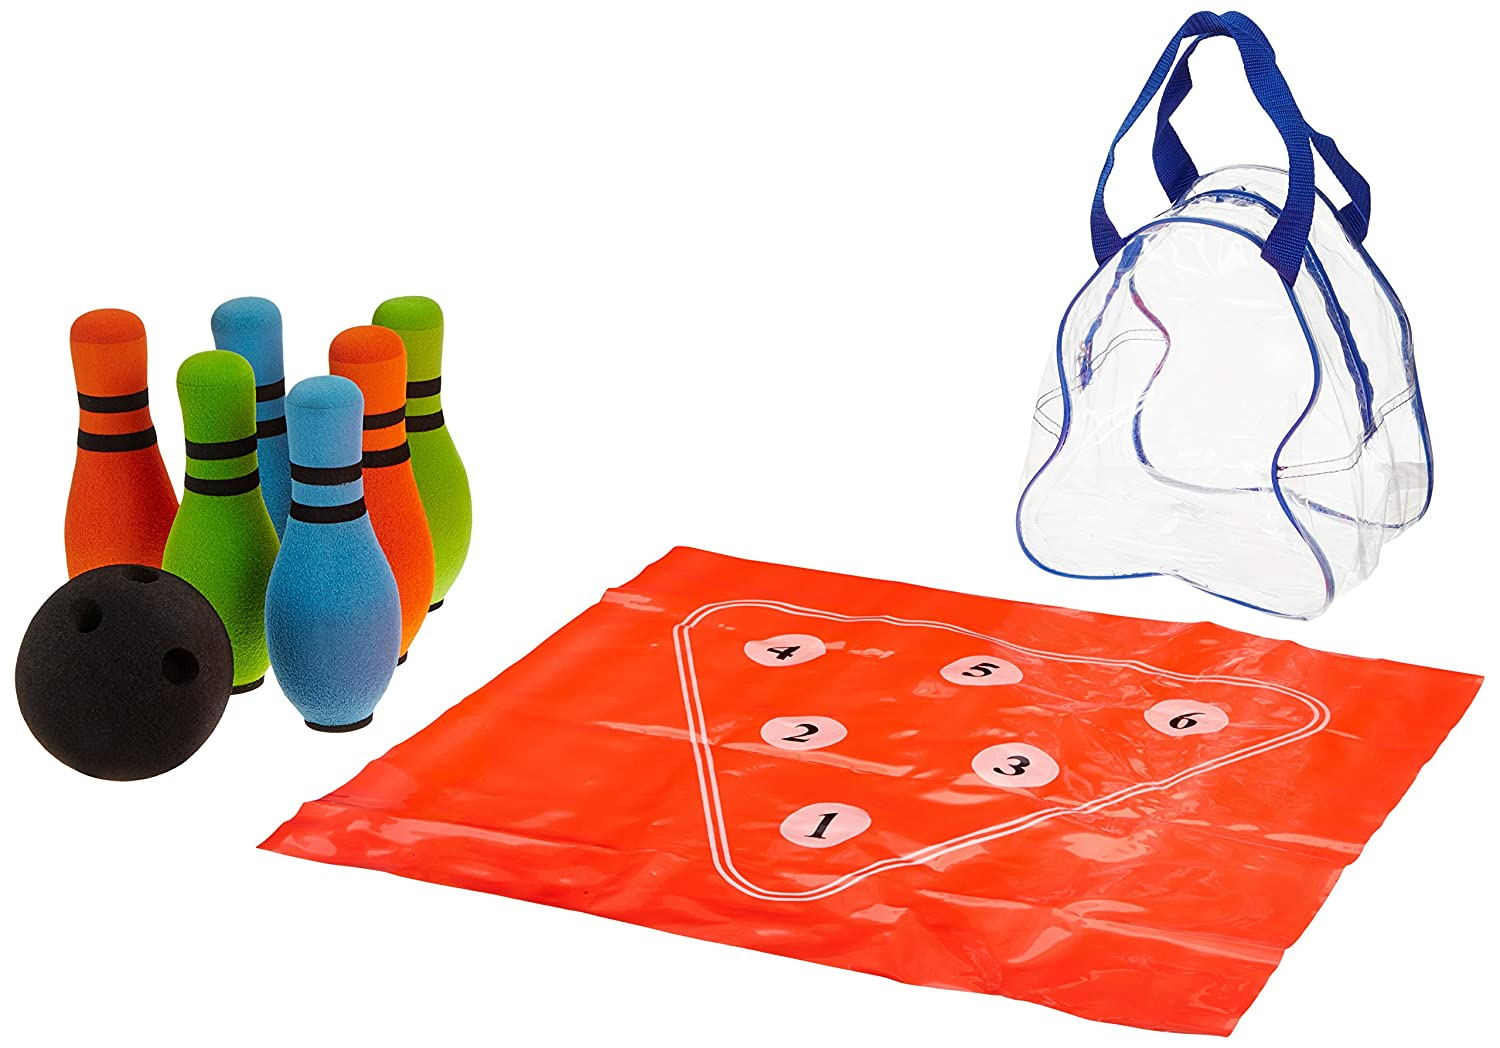 Sammons Preston Bowling Set Improve Motor Skills and Hand-Eye Coordination Soft Foam Ball and 10 Pins for Ambulatory and Wheelchair-Bound Children and Adults Indoor Recess Games for Kids